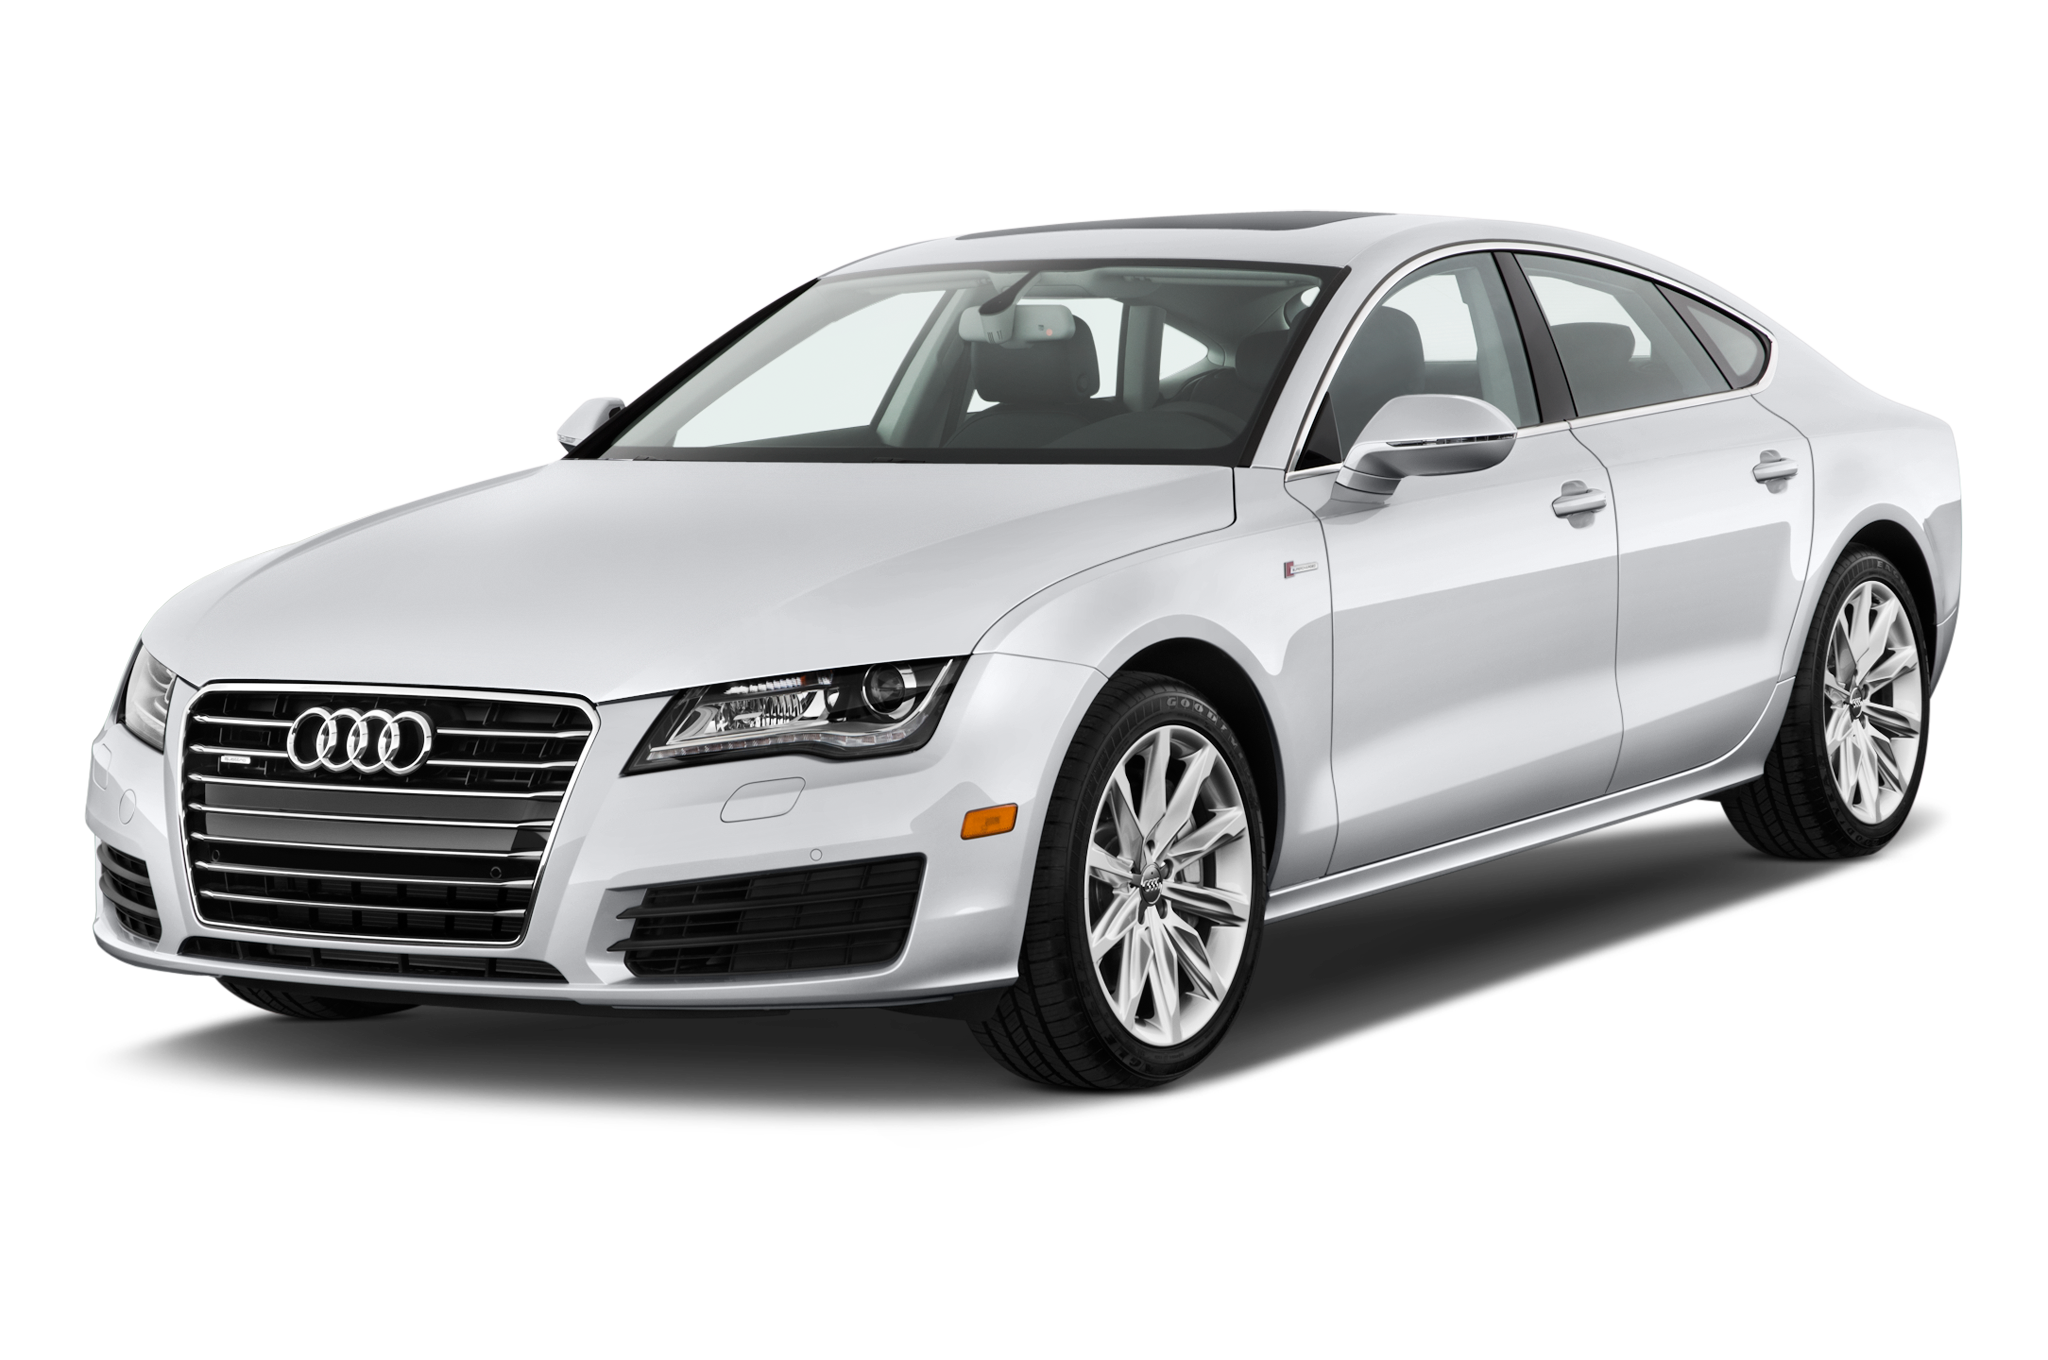 2015 audi a7 reviews and rating | motortrend